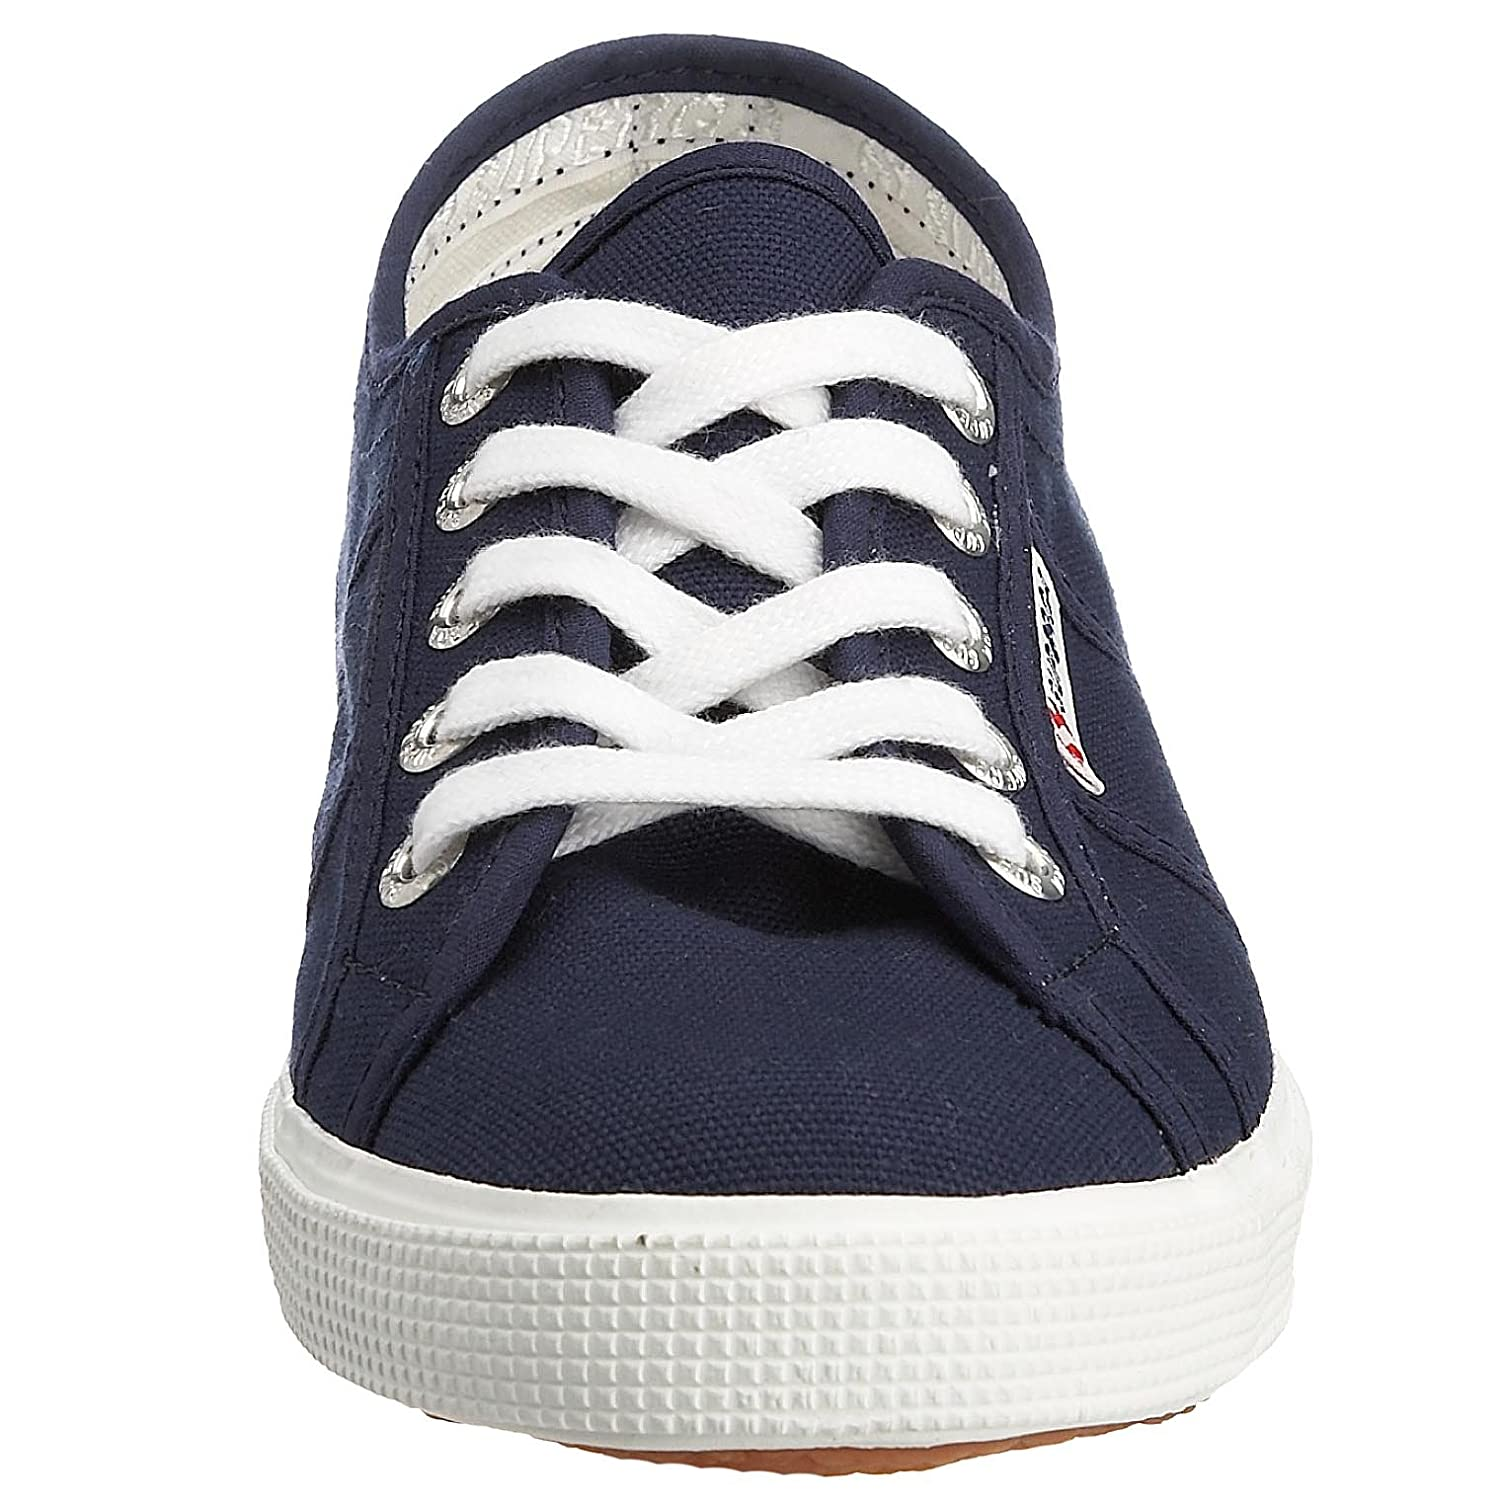 944 Blue 10.5 UK Superga Unisex Adults/' 2950 Cotu Low-Top Sneakers